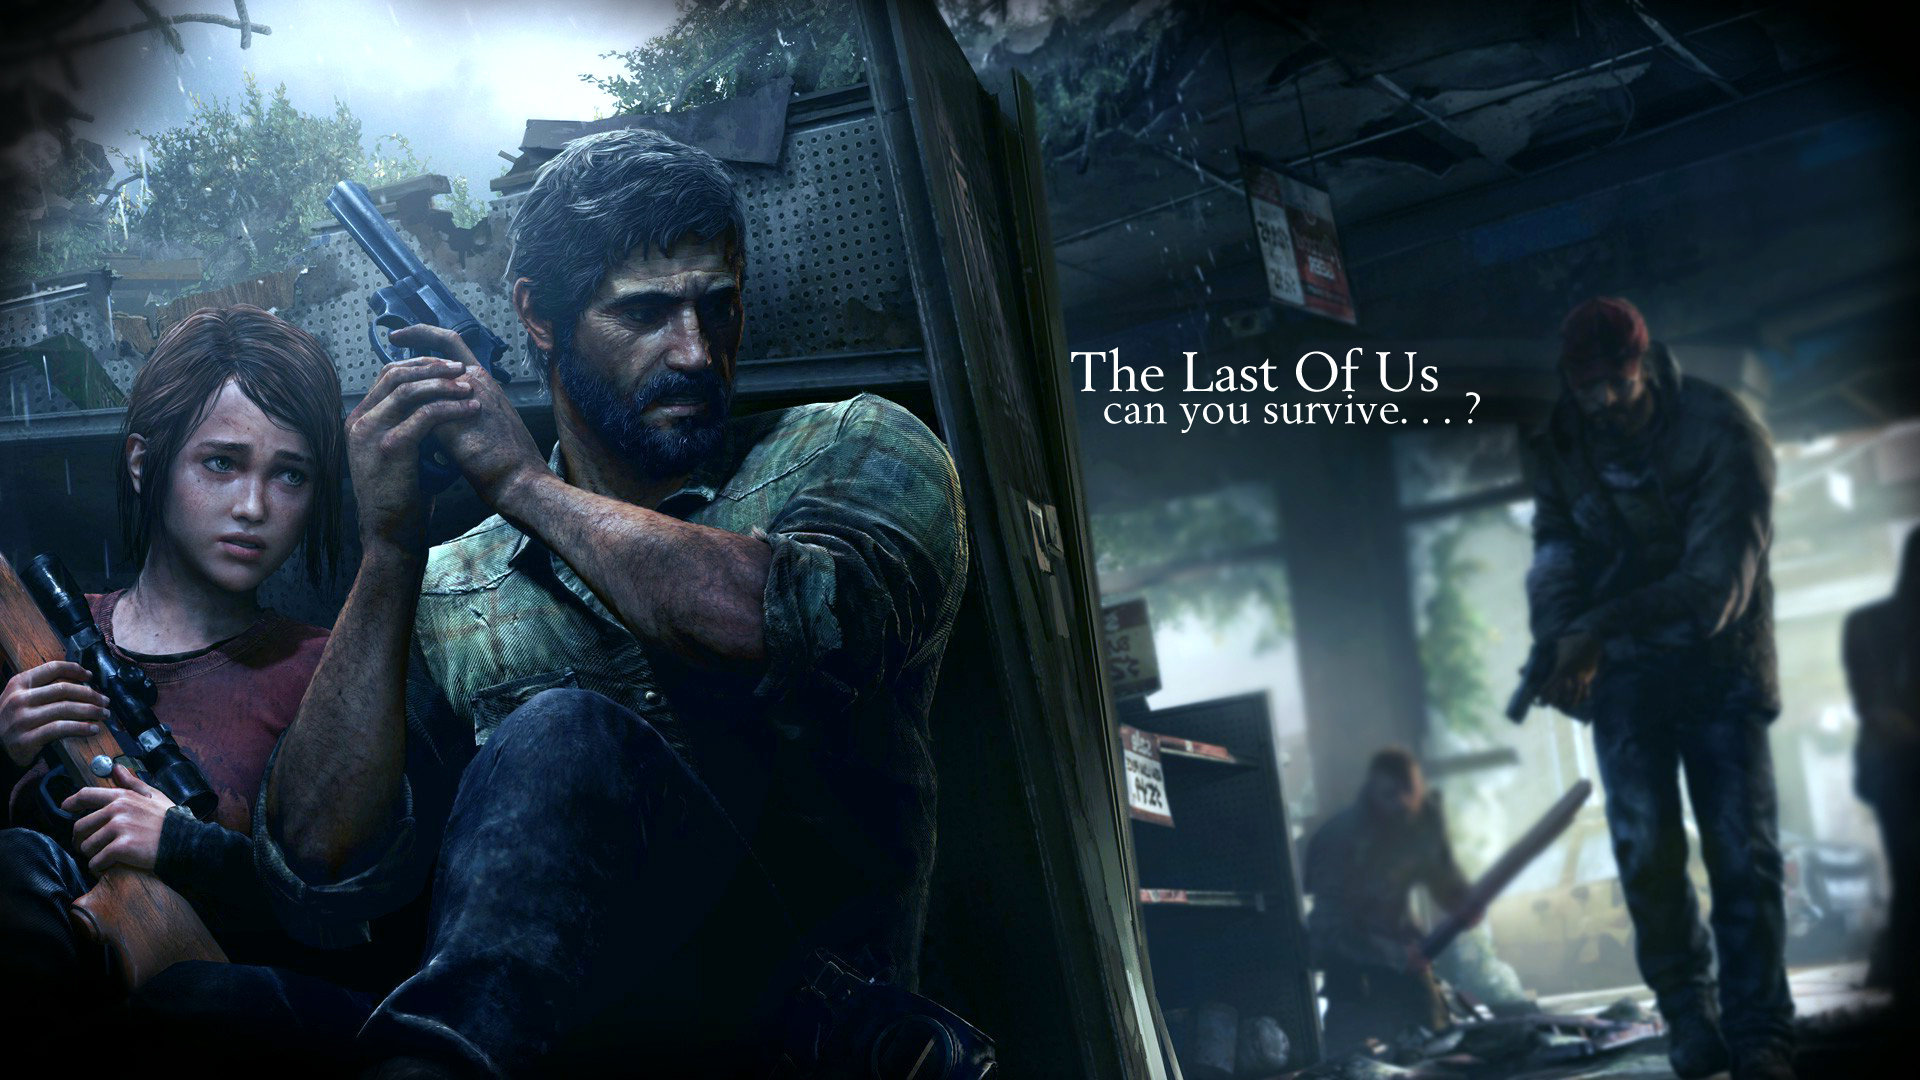 The Last Of Us HD Wallpaper 8   1920 X 1080 stmednet 1920x1080